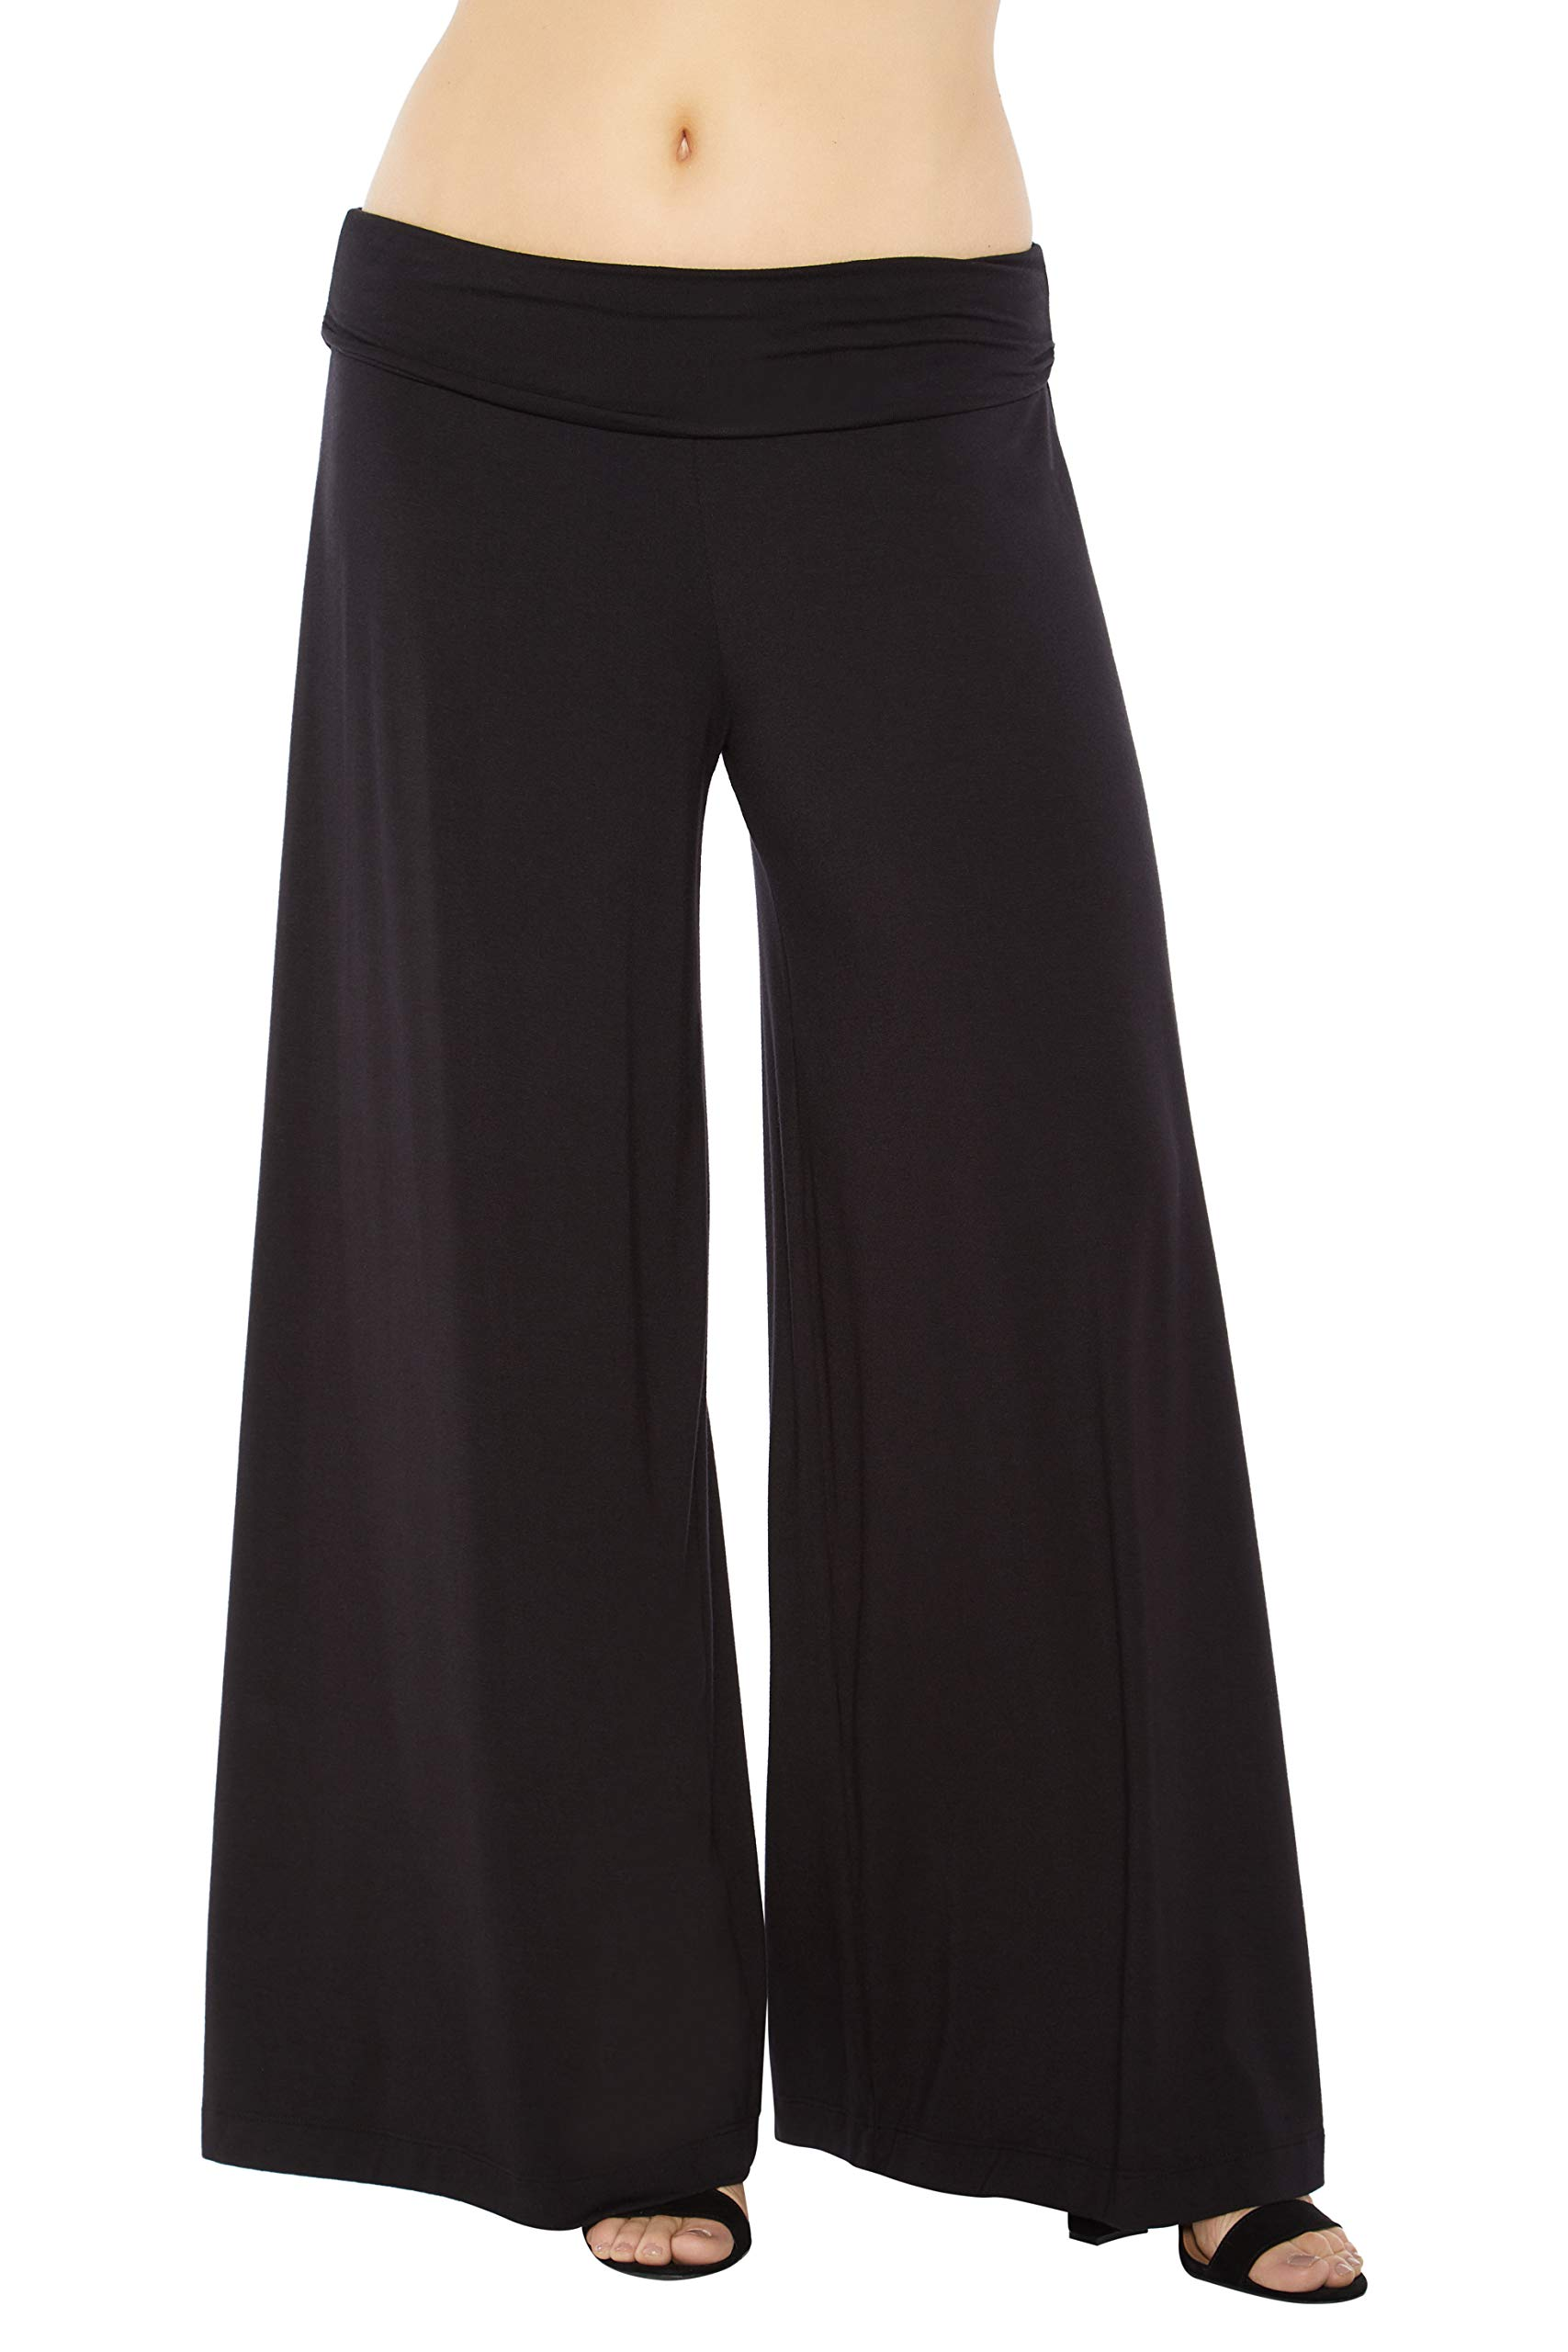 Rohb by Joyce Azria Harbor Wide Leg Ruched Waist Palazzo Pant (Black) Size L